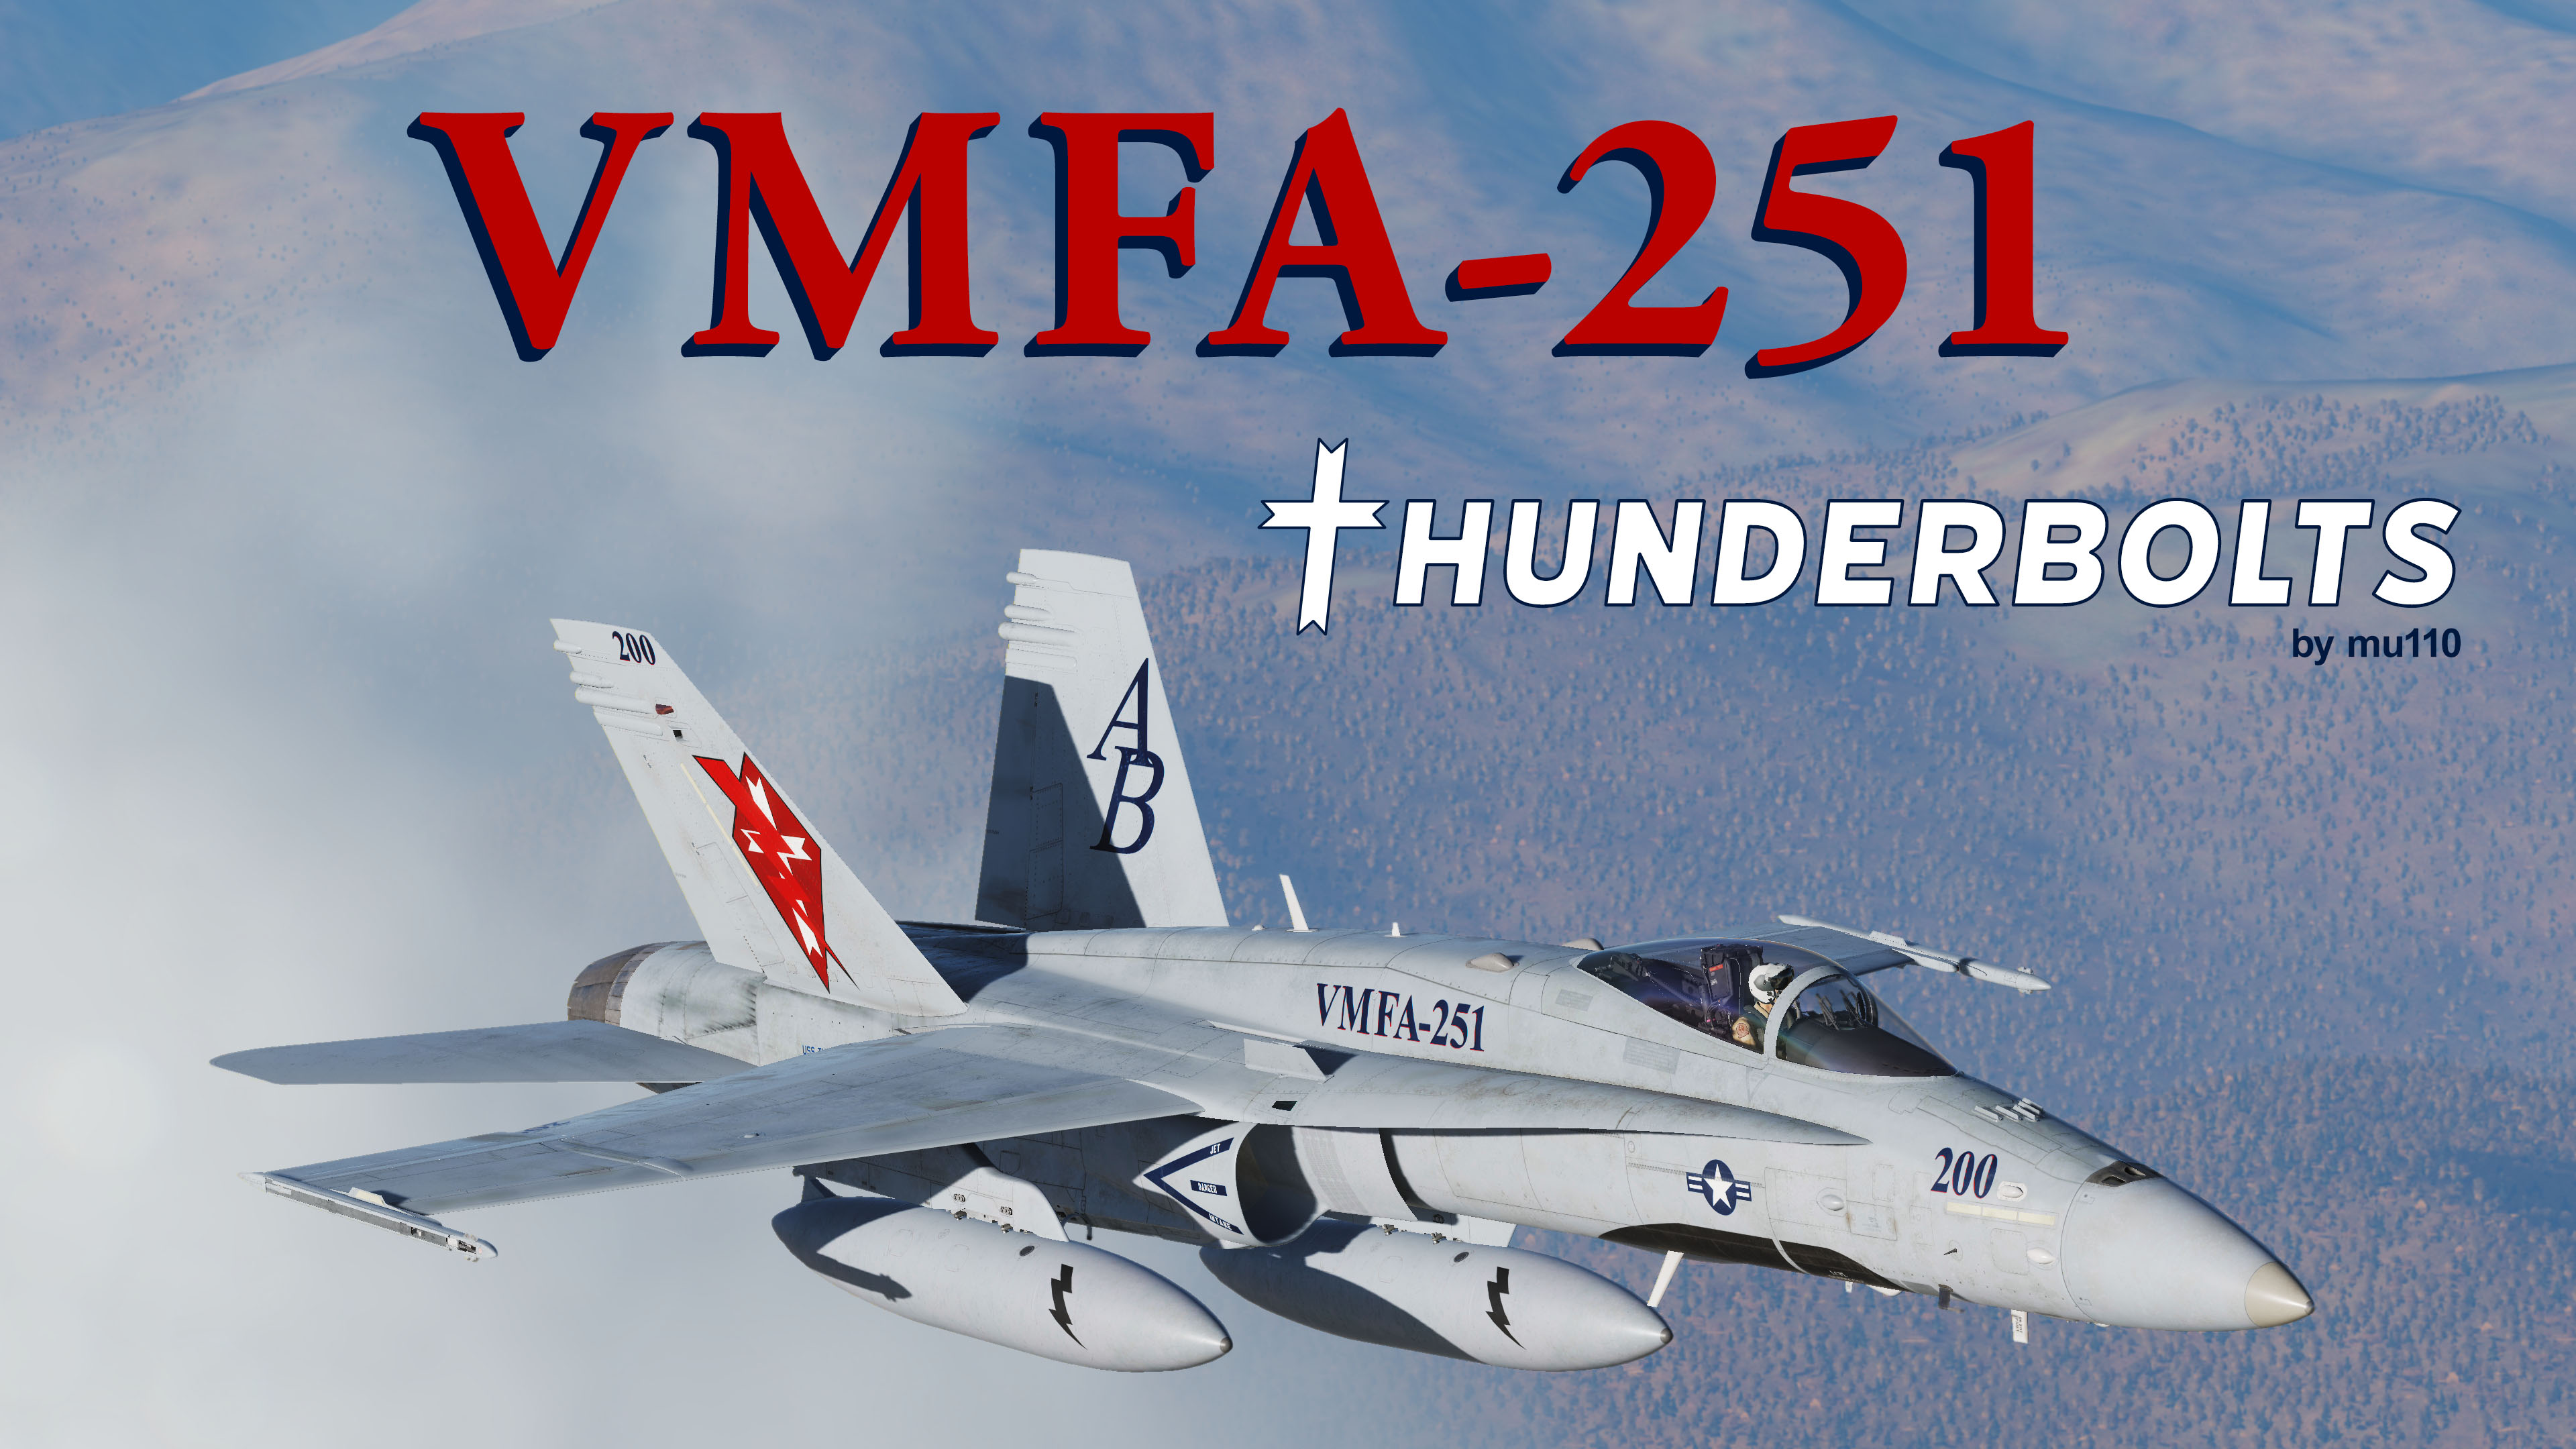 VMFA-251 Thunderbolts Skin Pack! [Updated]